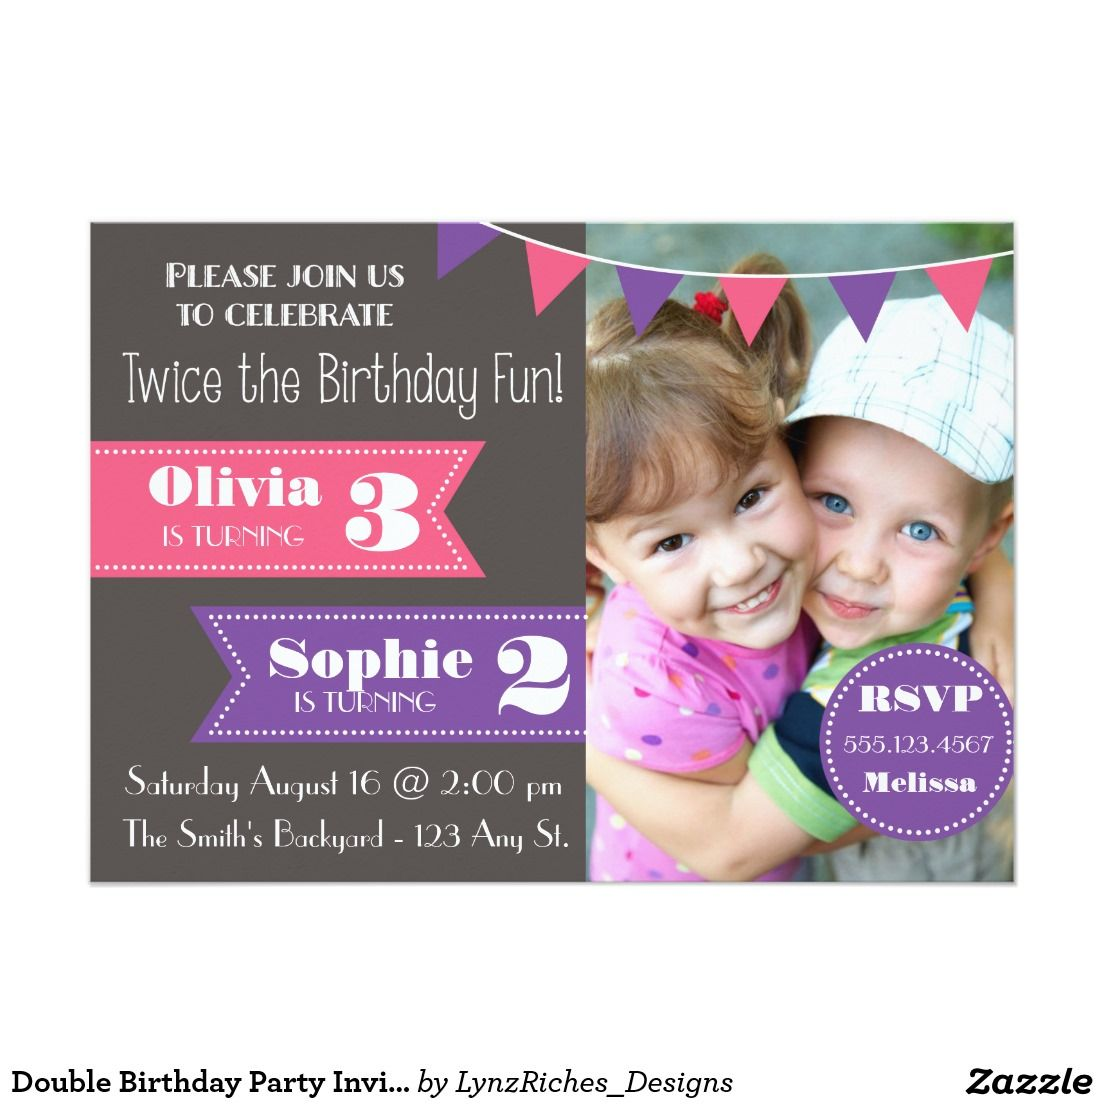 20 Joint Birthday Party Invitation Wording 6 | Ruti and Arti\'s ...